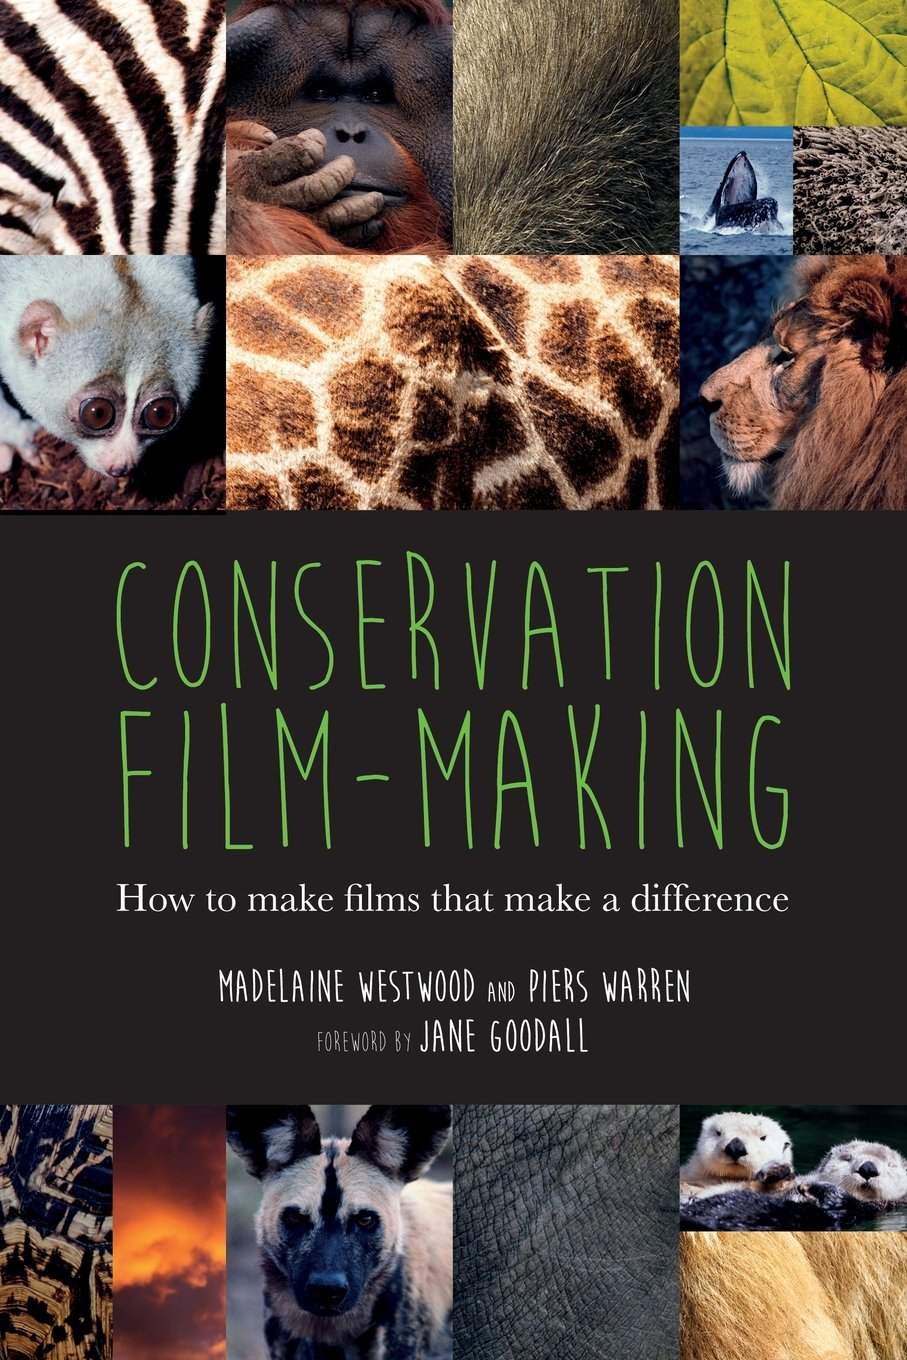 Conservation film making how to make films that make a difference madelaine westwood piers warren jane goodall 9781905843107 amazon com books